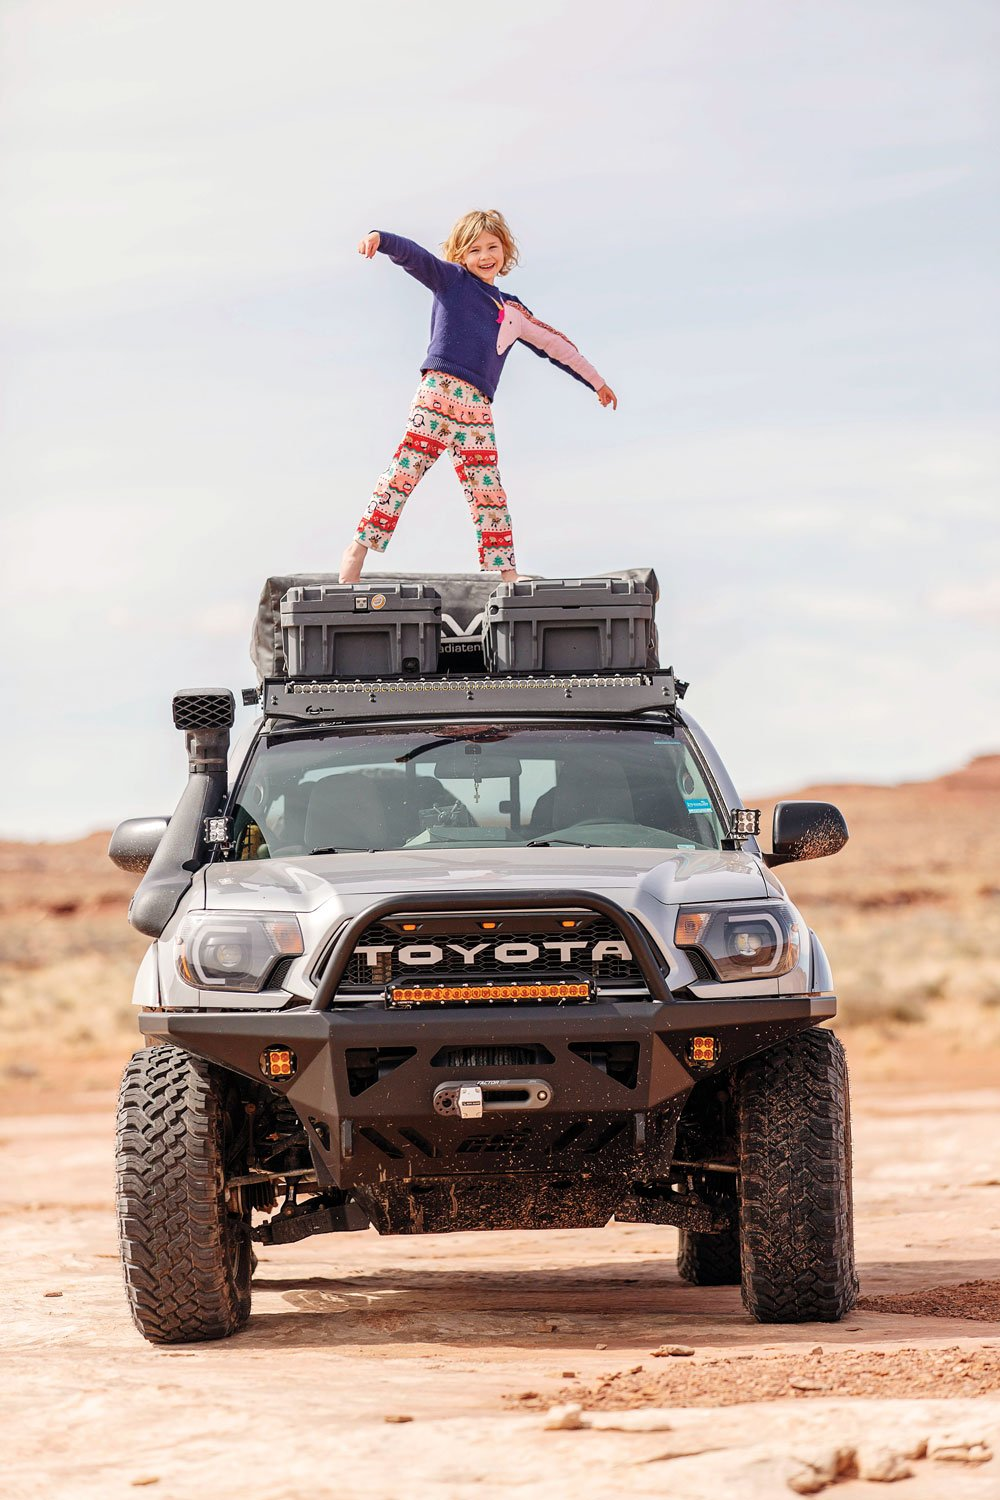 The kids enjoy traveling in the Tacoma TRD as much as Dad